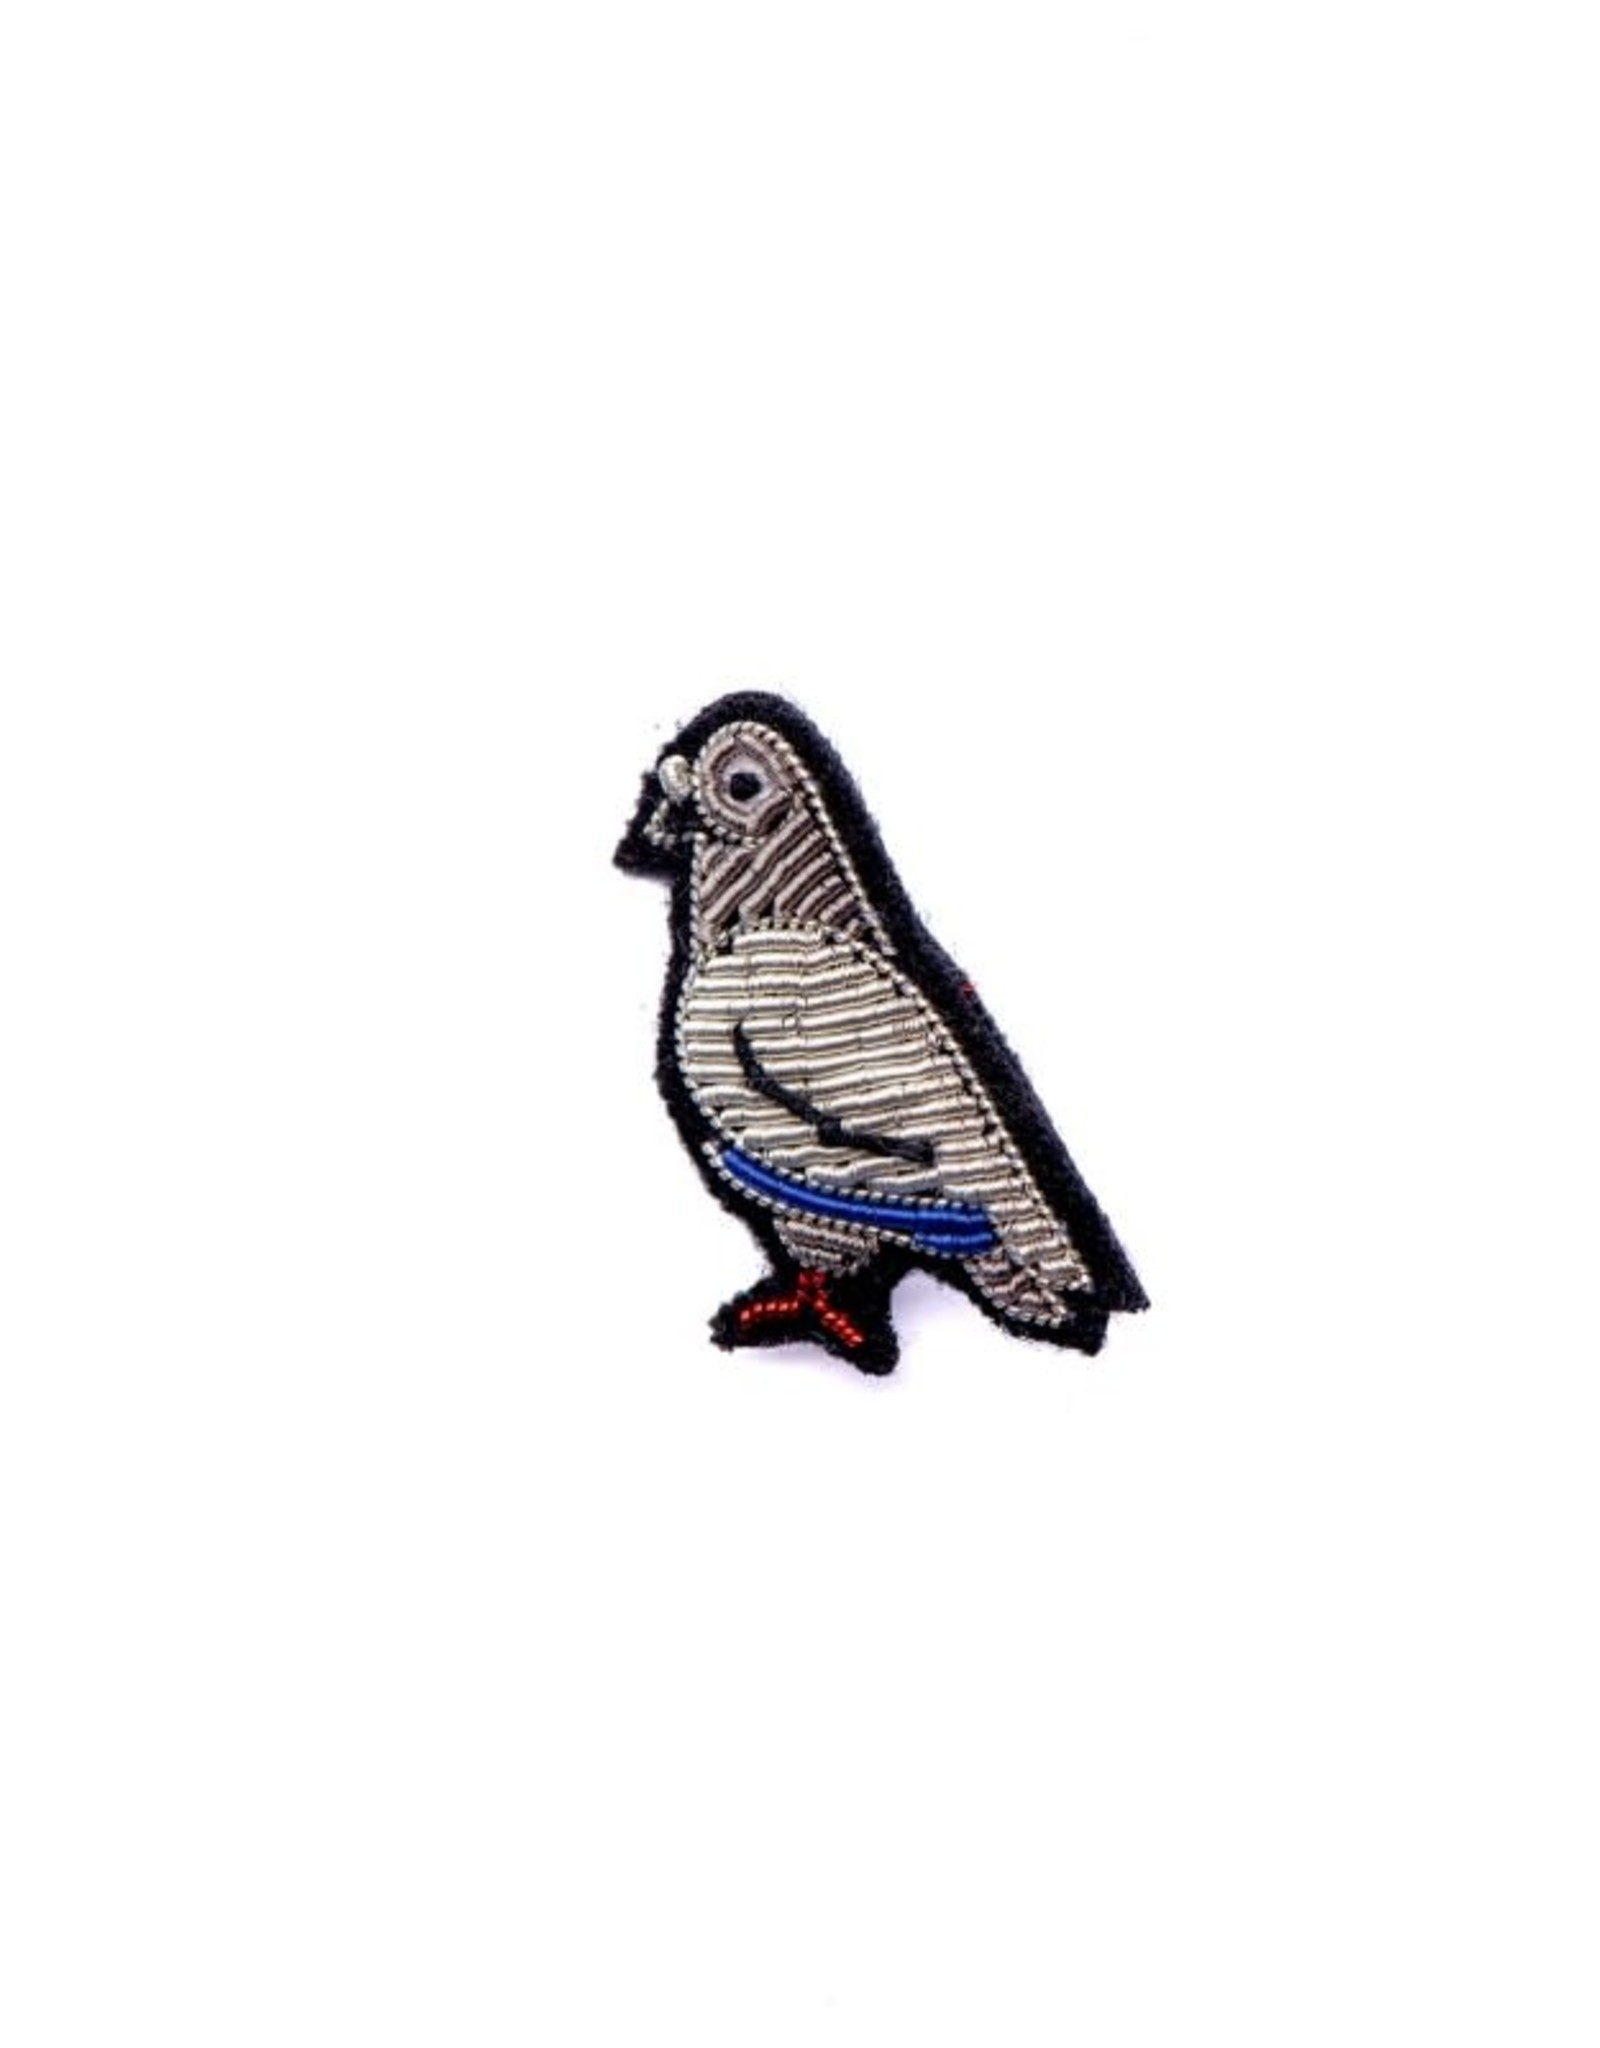 Macon & Lesquoy 'Pigeon' Pin